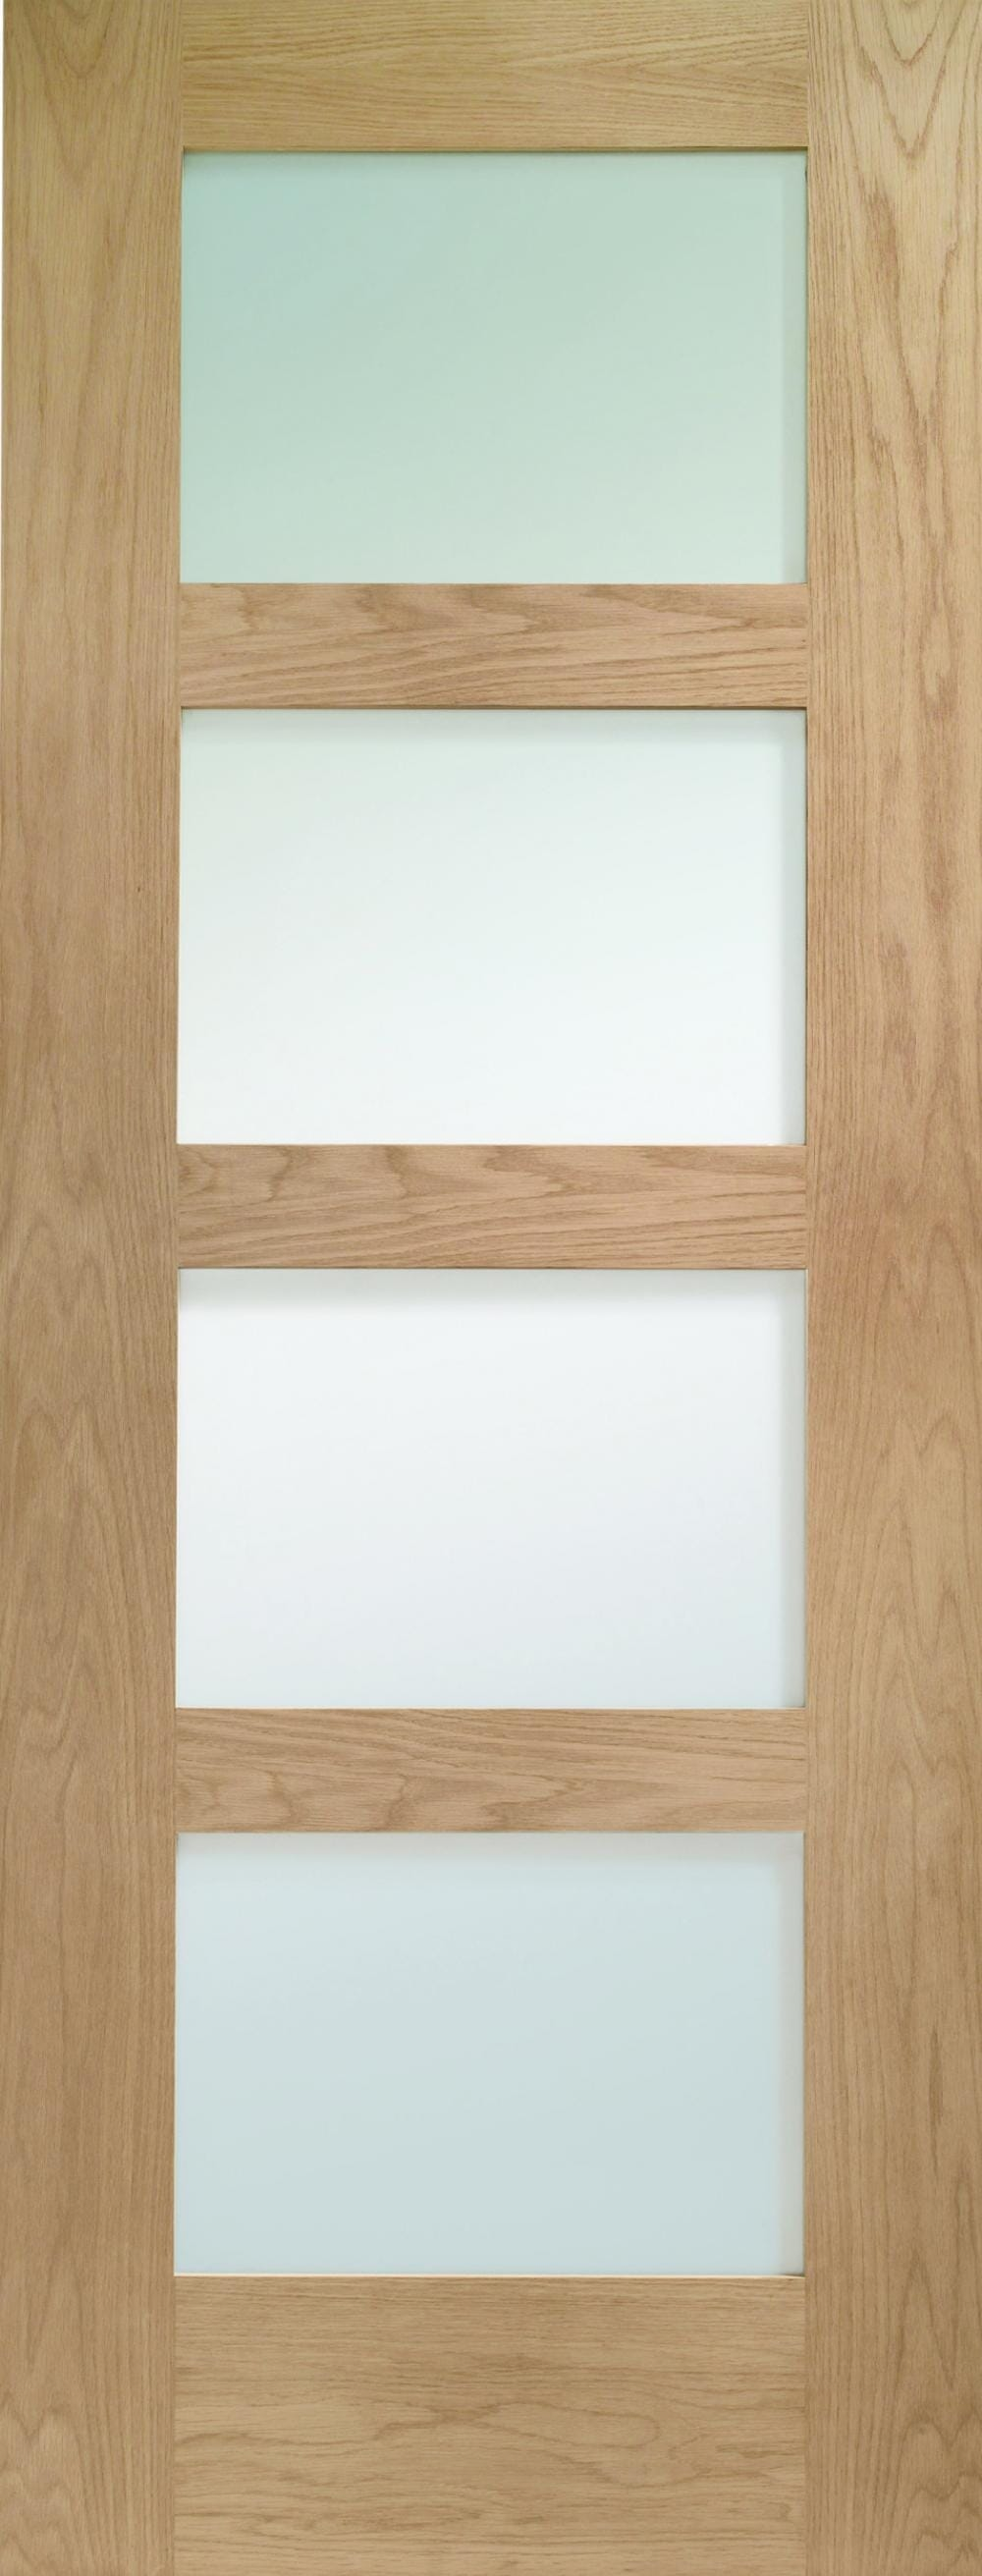 Oak Shaker 4 Light - Prefinished Clear Image